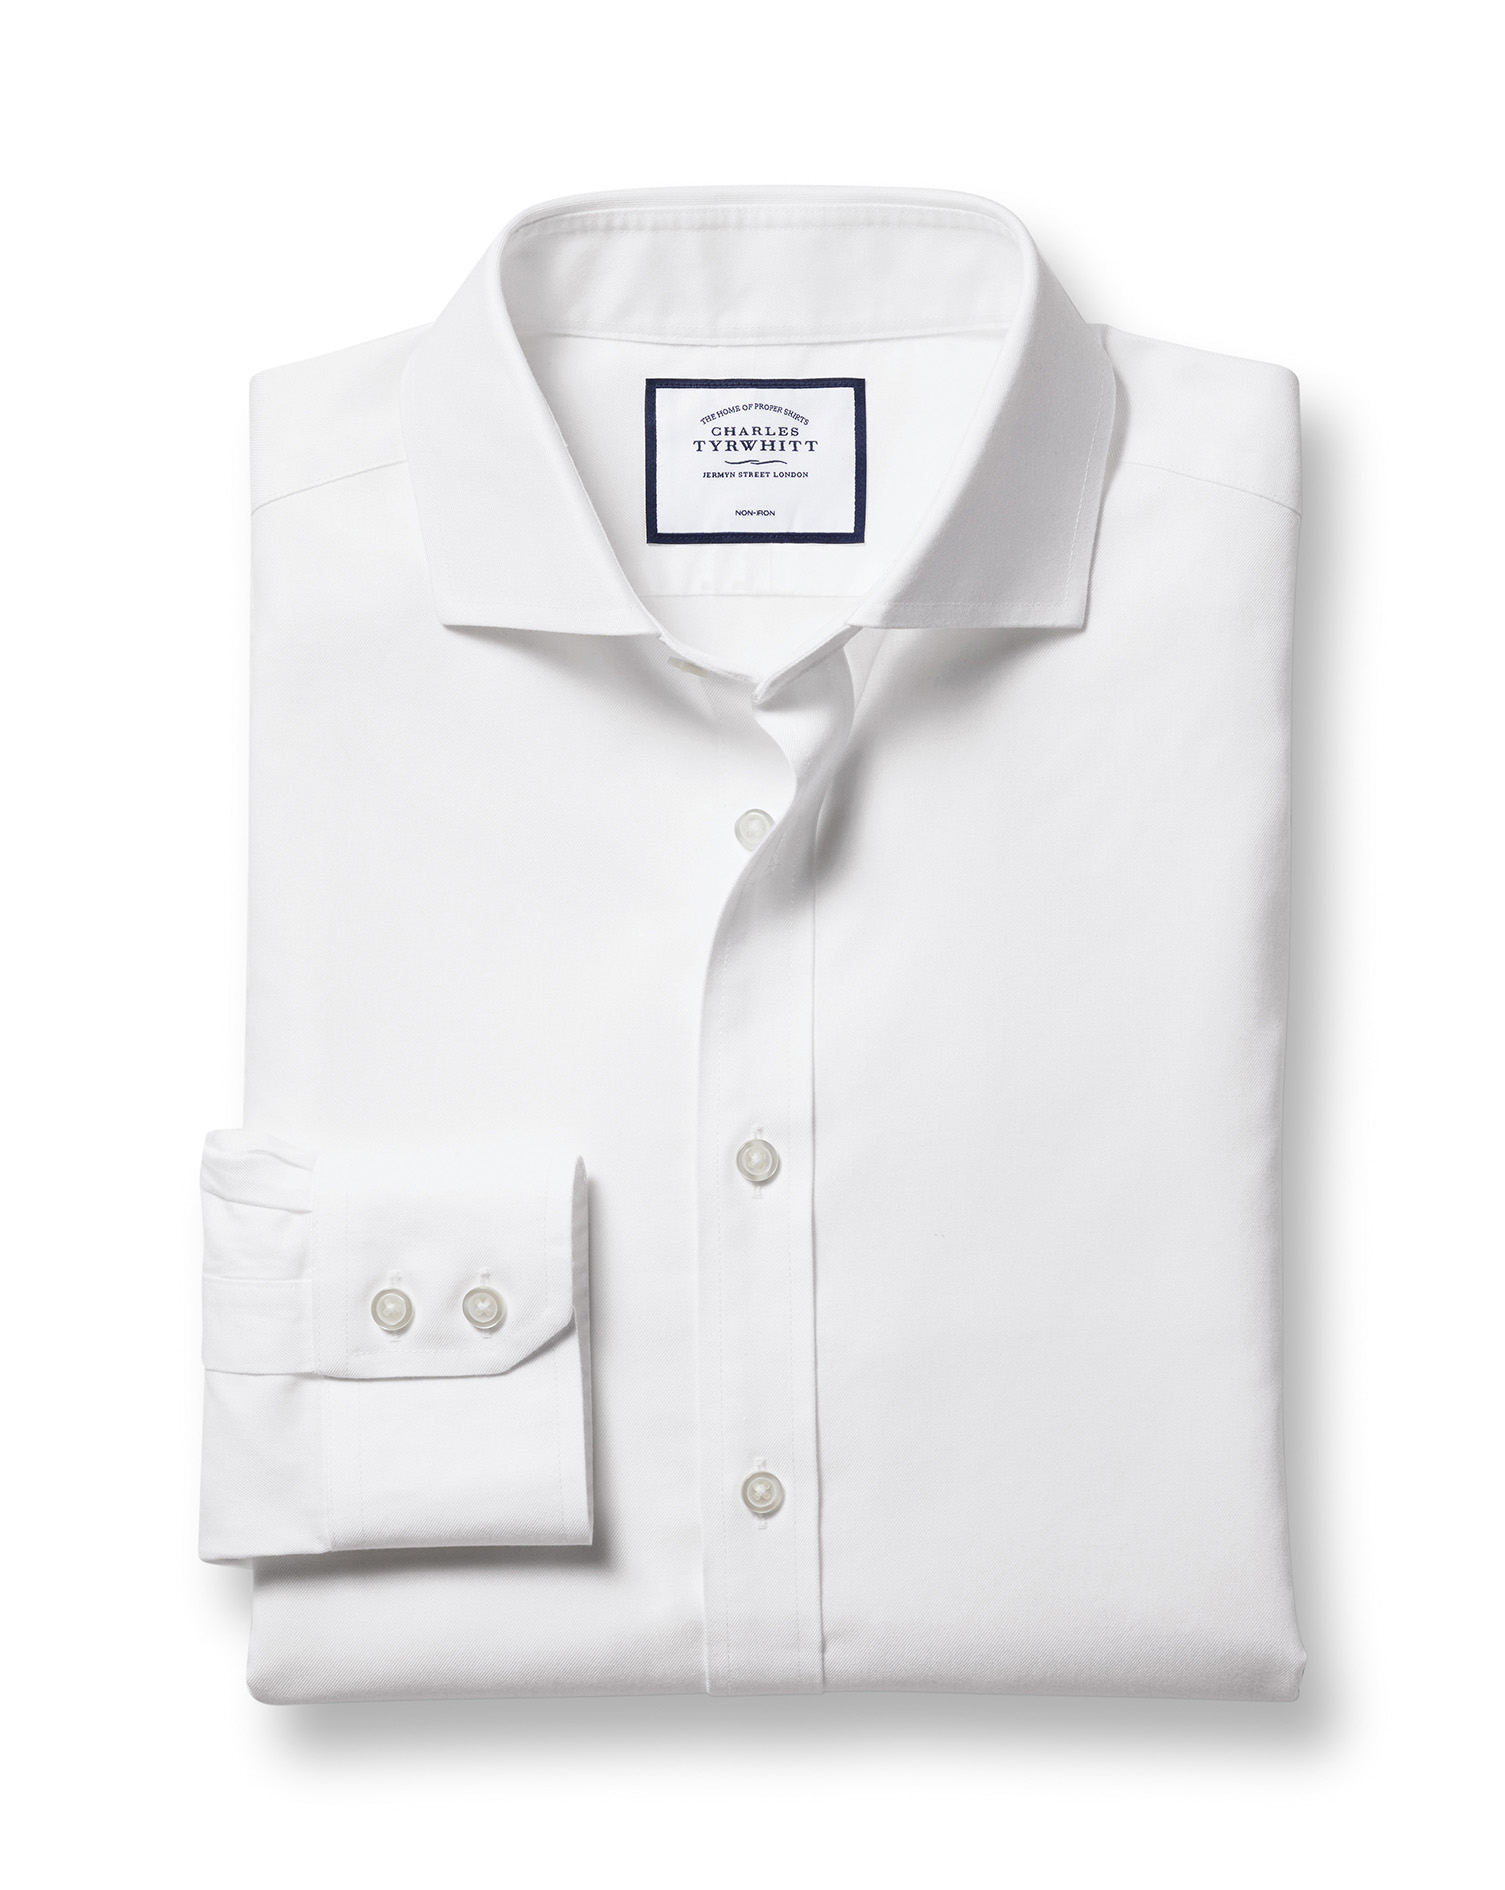 Classic Fit Cutaway Non-Iron Twill White Cotton Formal Shirt Double Cuff Size 15.5/32 by Charles Tyr